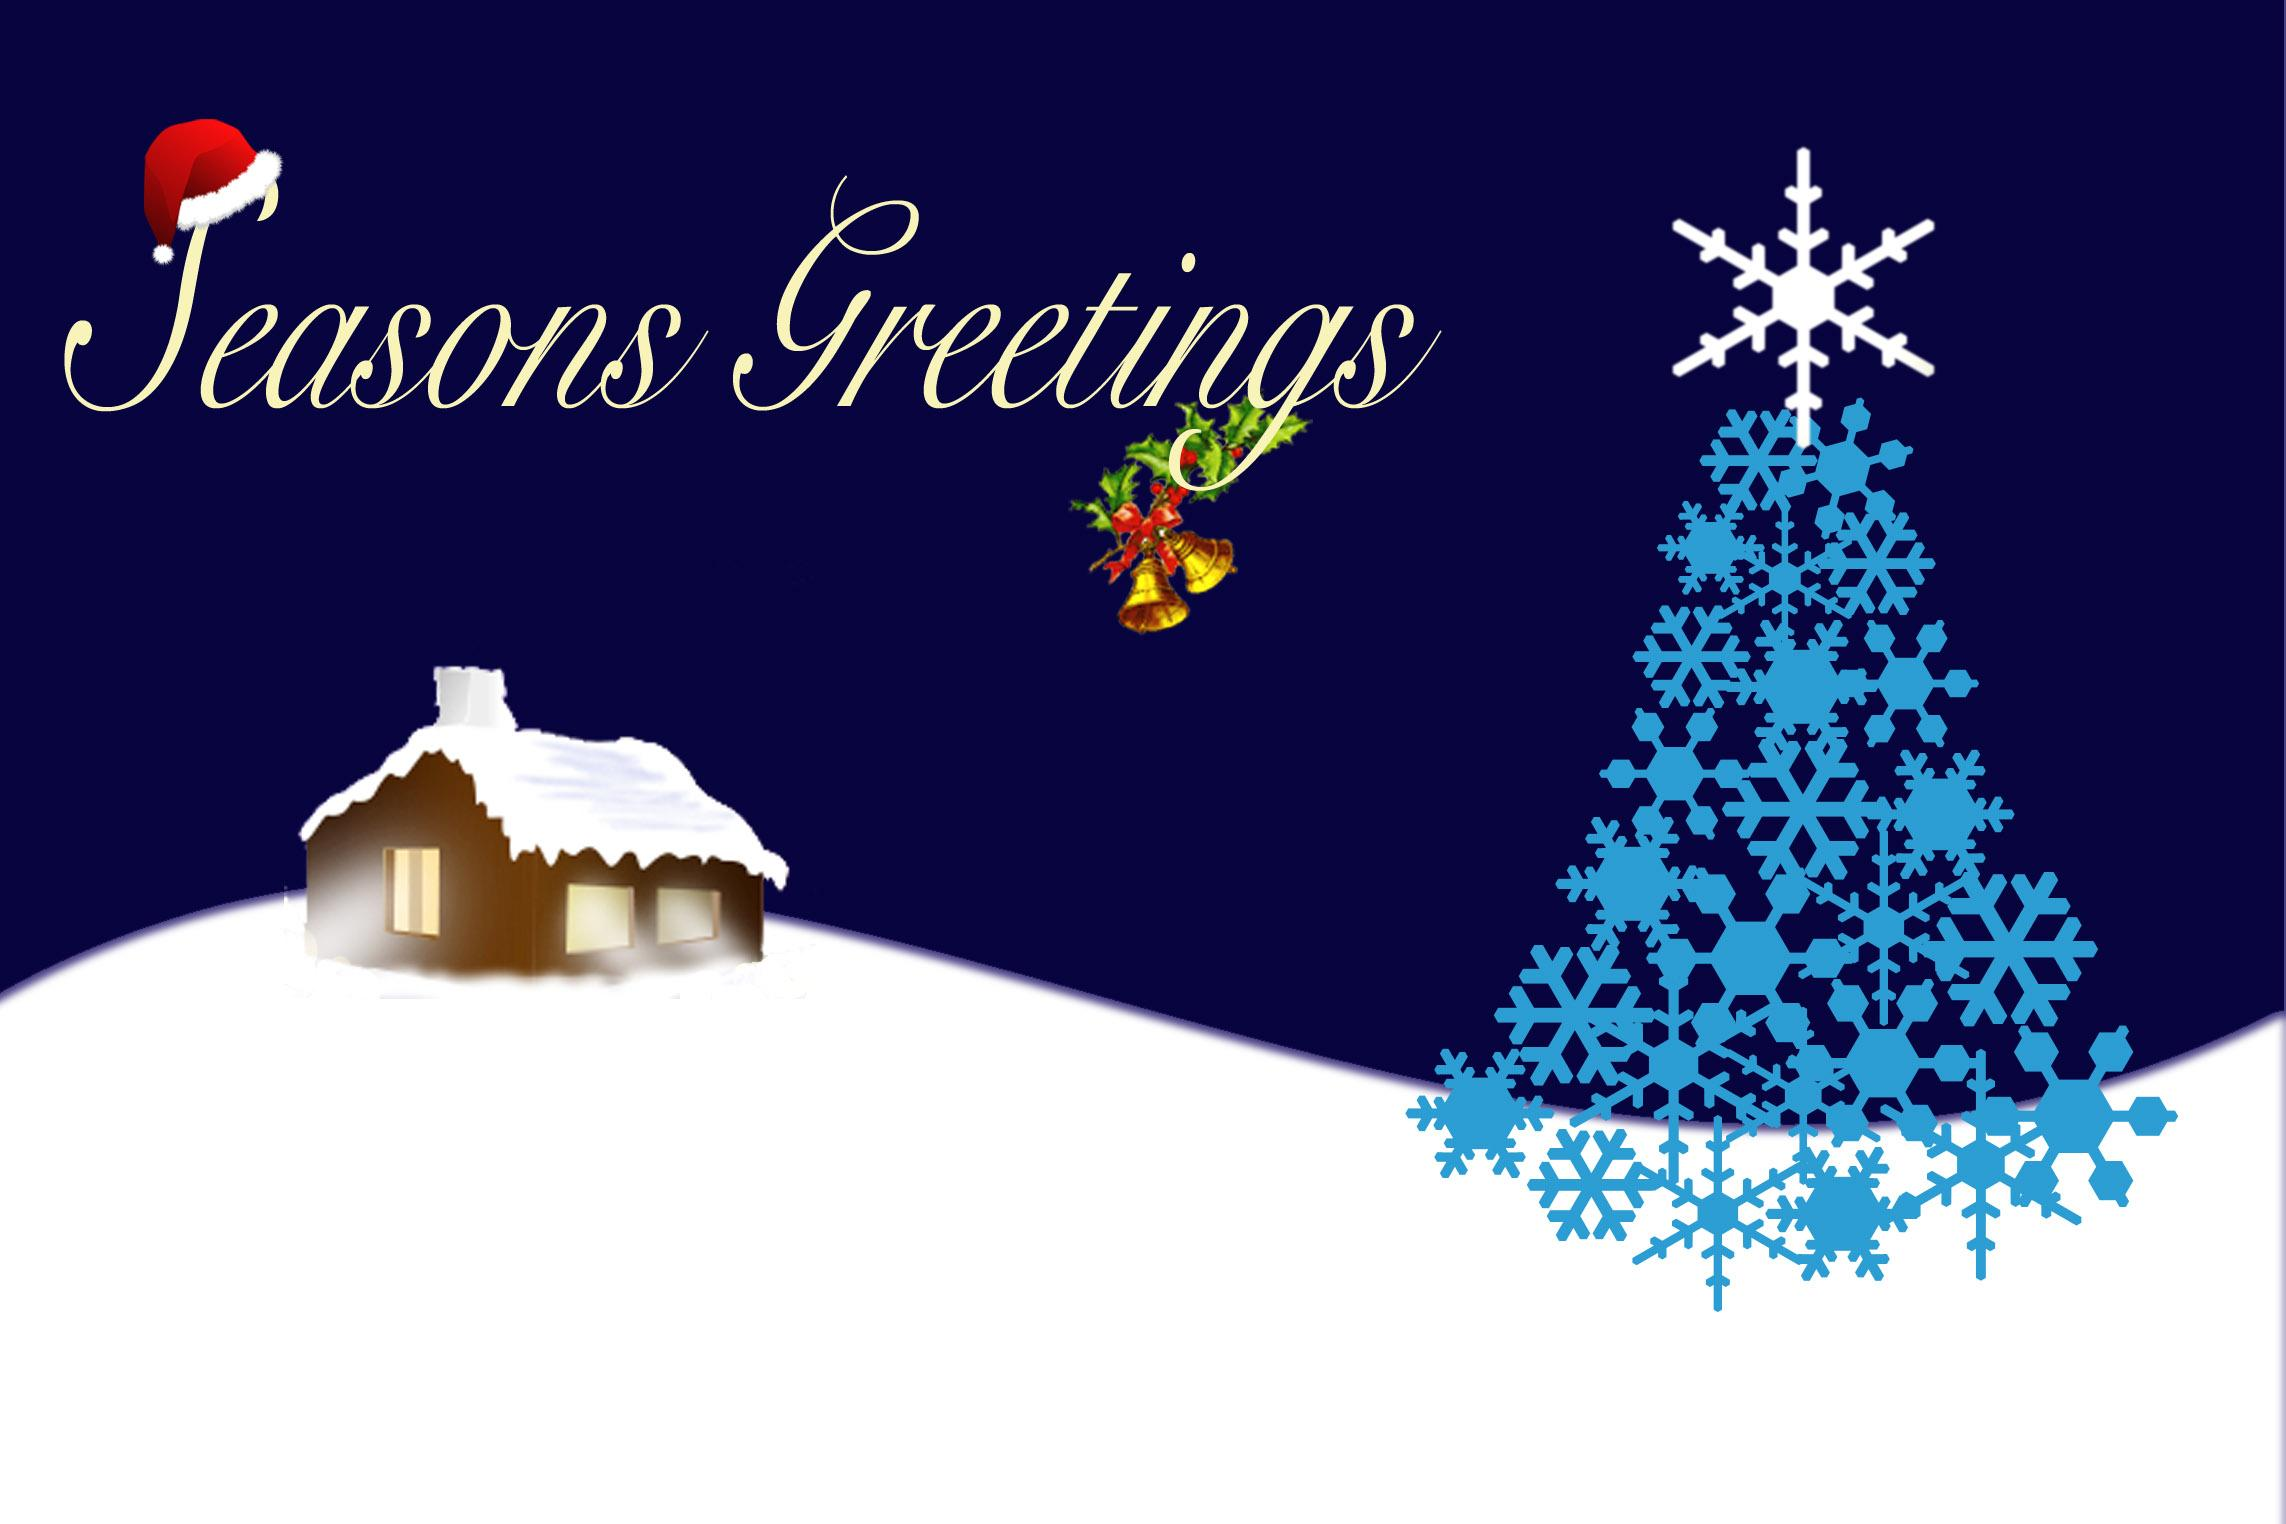 Seasons greetings wallpapers high quality download free seasons greetings desktop wallpaper hd kristyandbryce Image collections